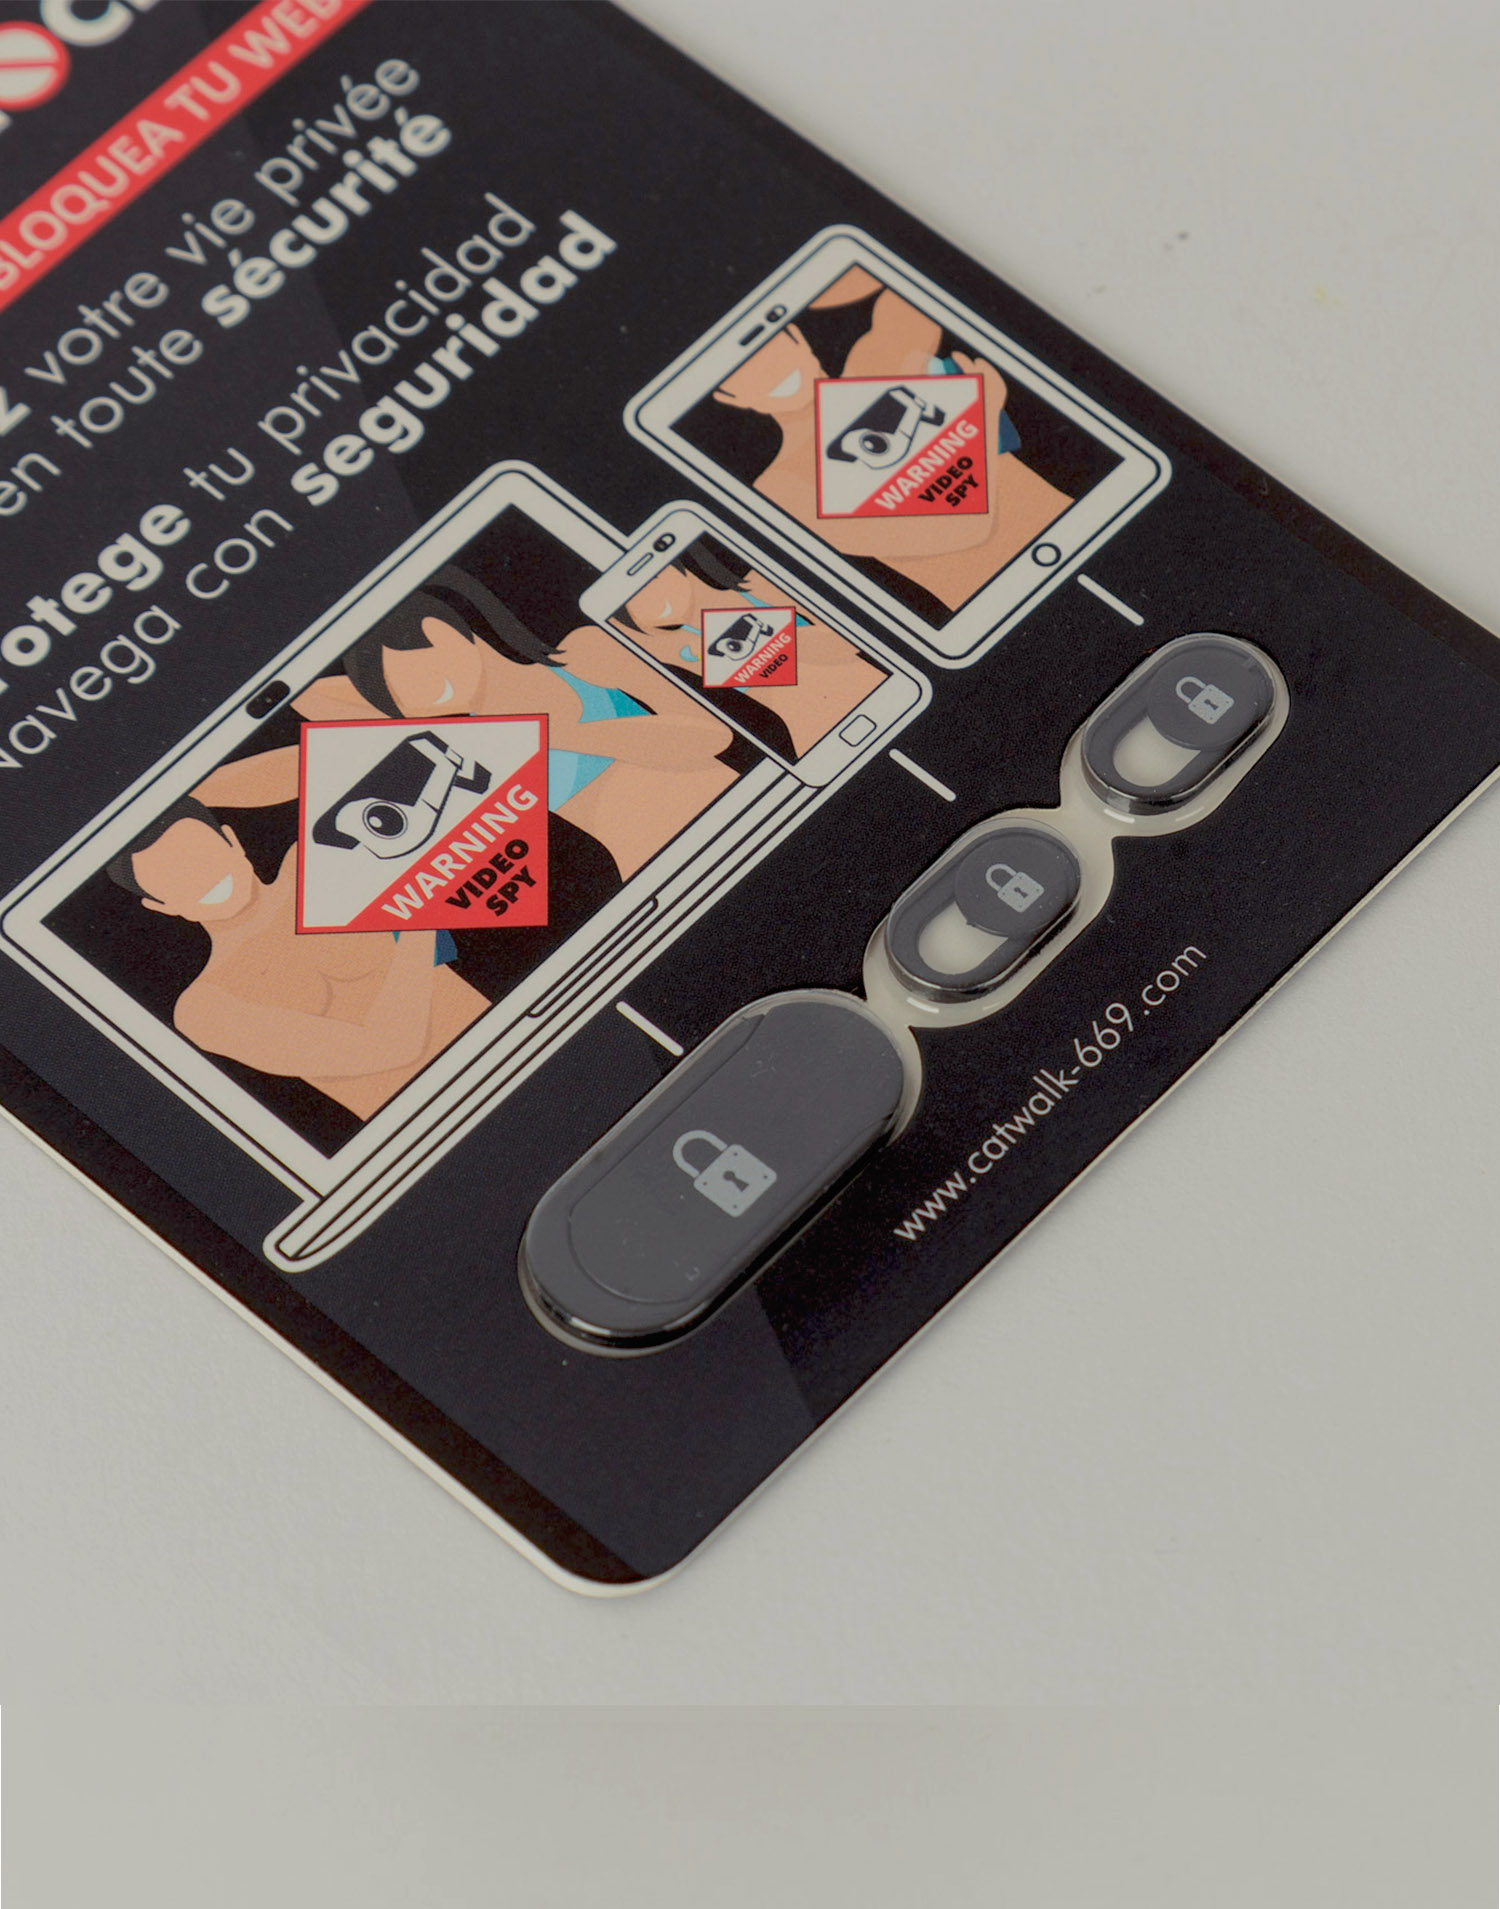 Webcam blocker stickers